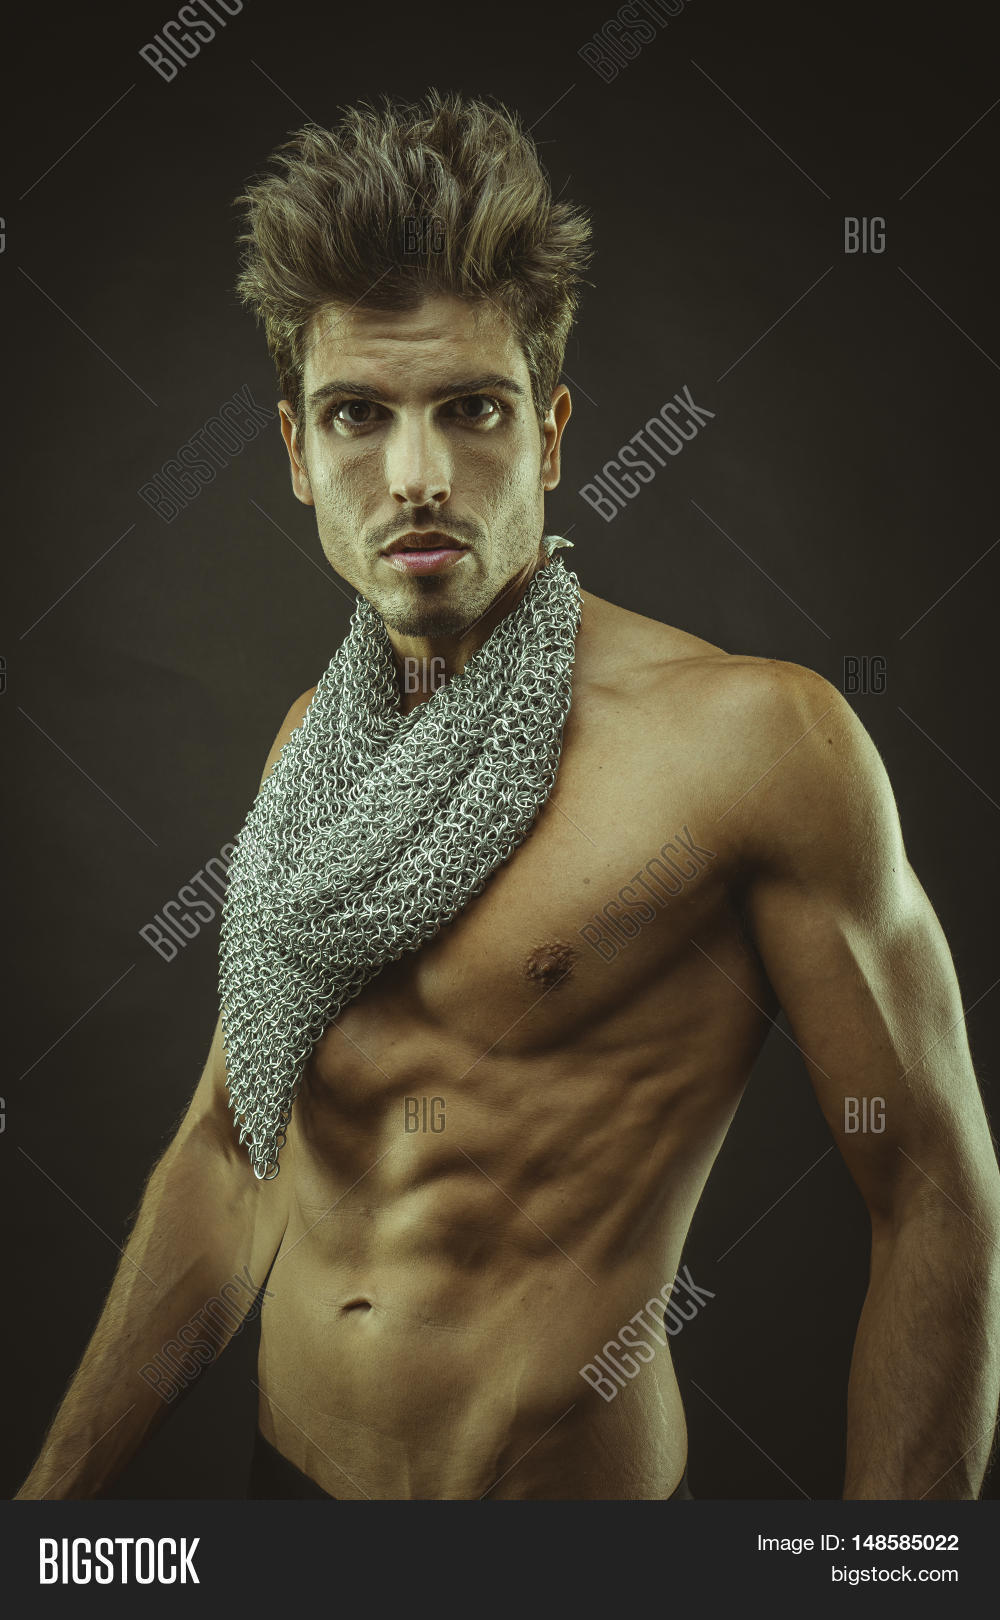 Muscular Man Brown Image & Photo (Free Trial) | Bigstock